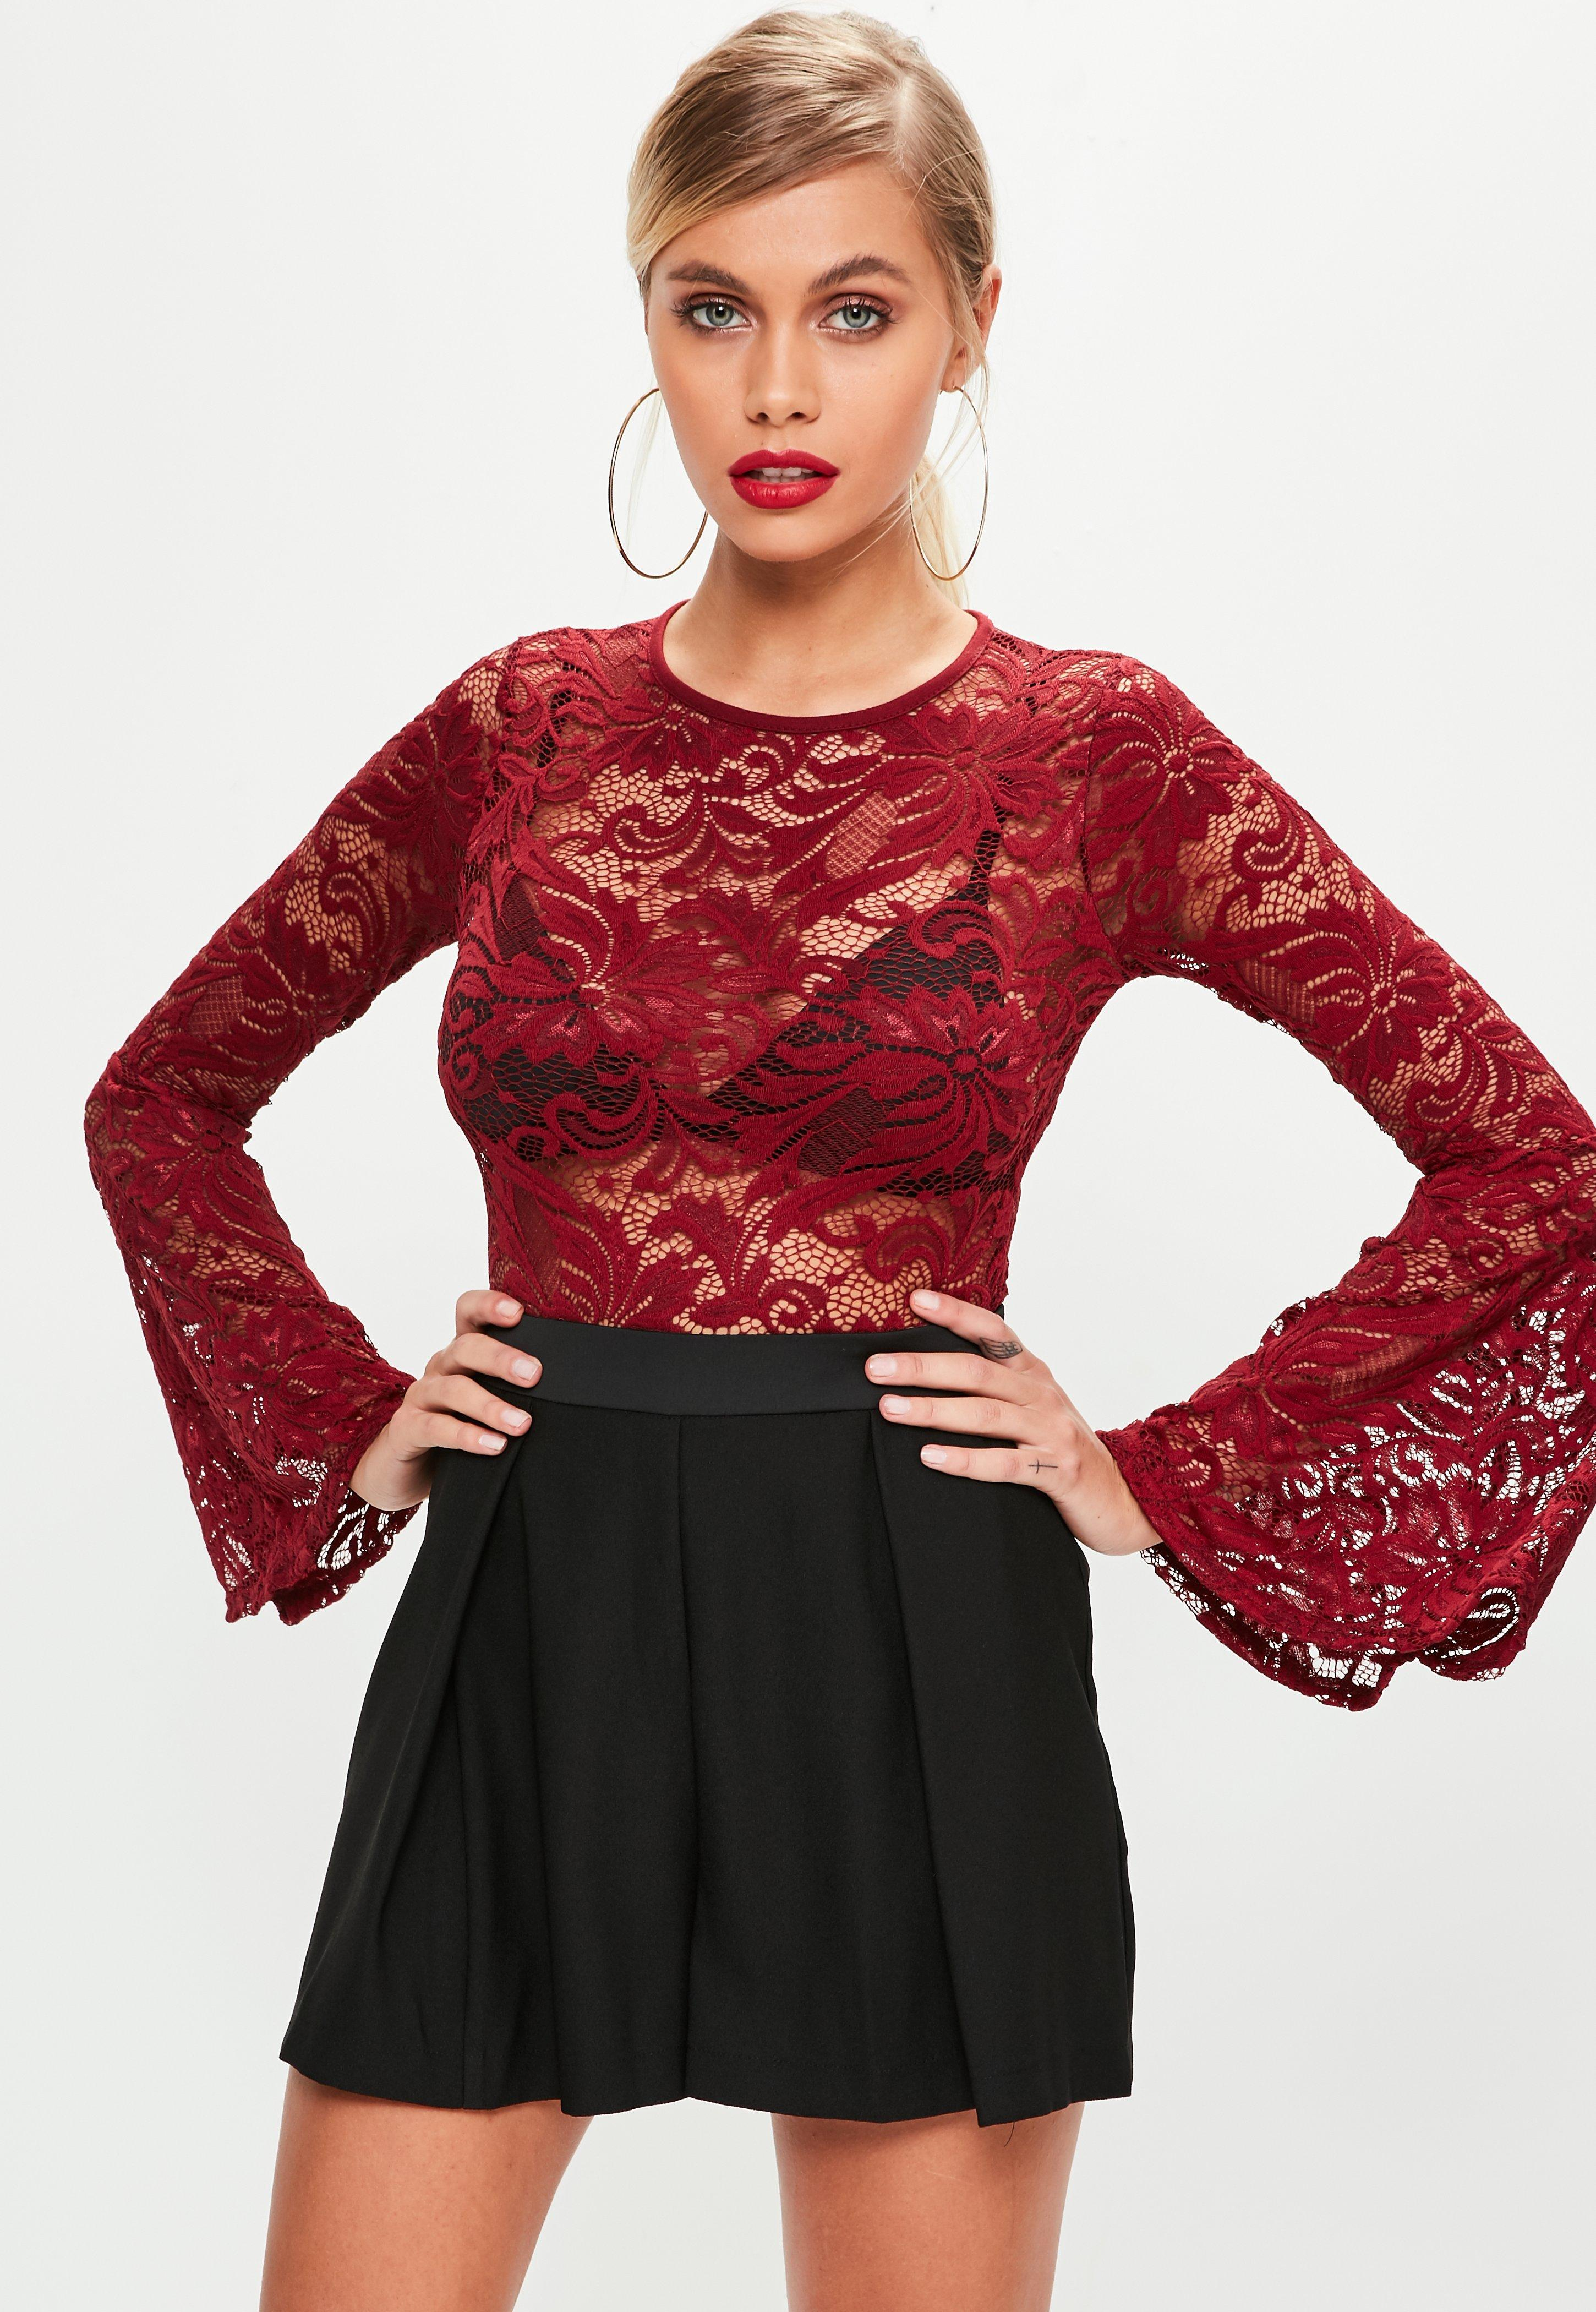 1373c932e4 Missguided Burgundy Lace Bodysuit in Red - Lyst